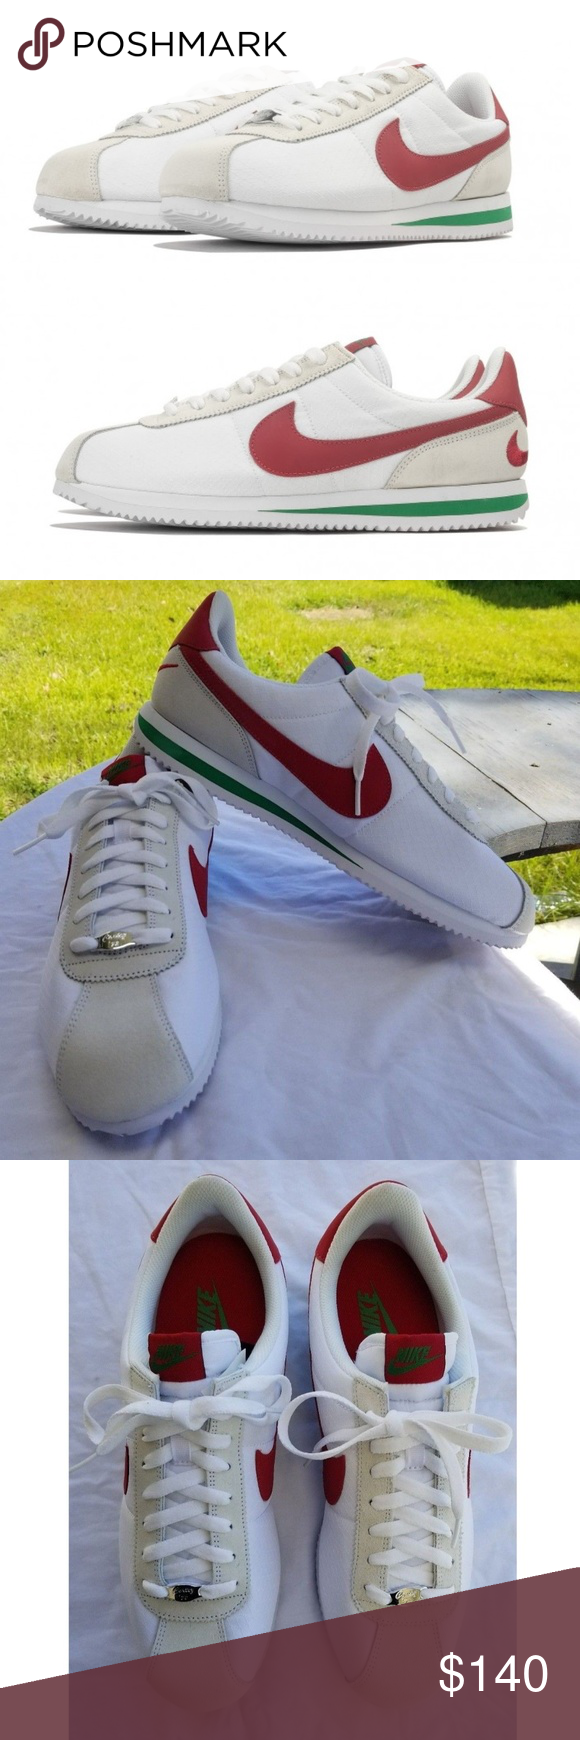 quality design 54c75 fc898 ... spain nike cortez txt 11.5 gump white green red nwob nike cortez txt sz  11.5 white